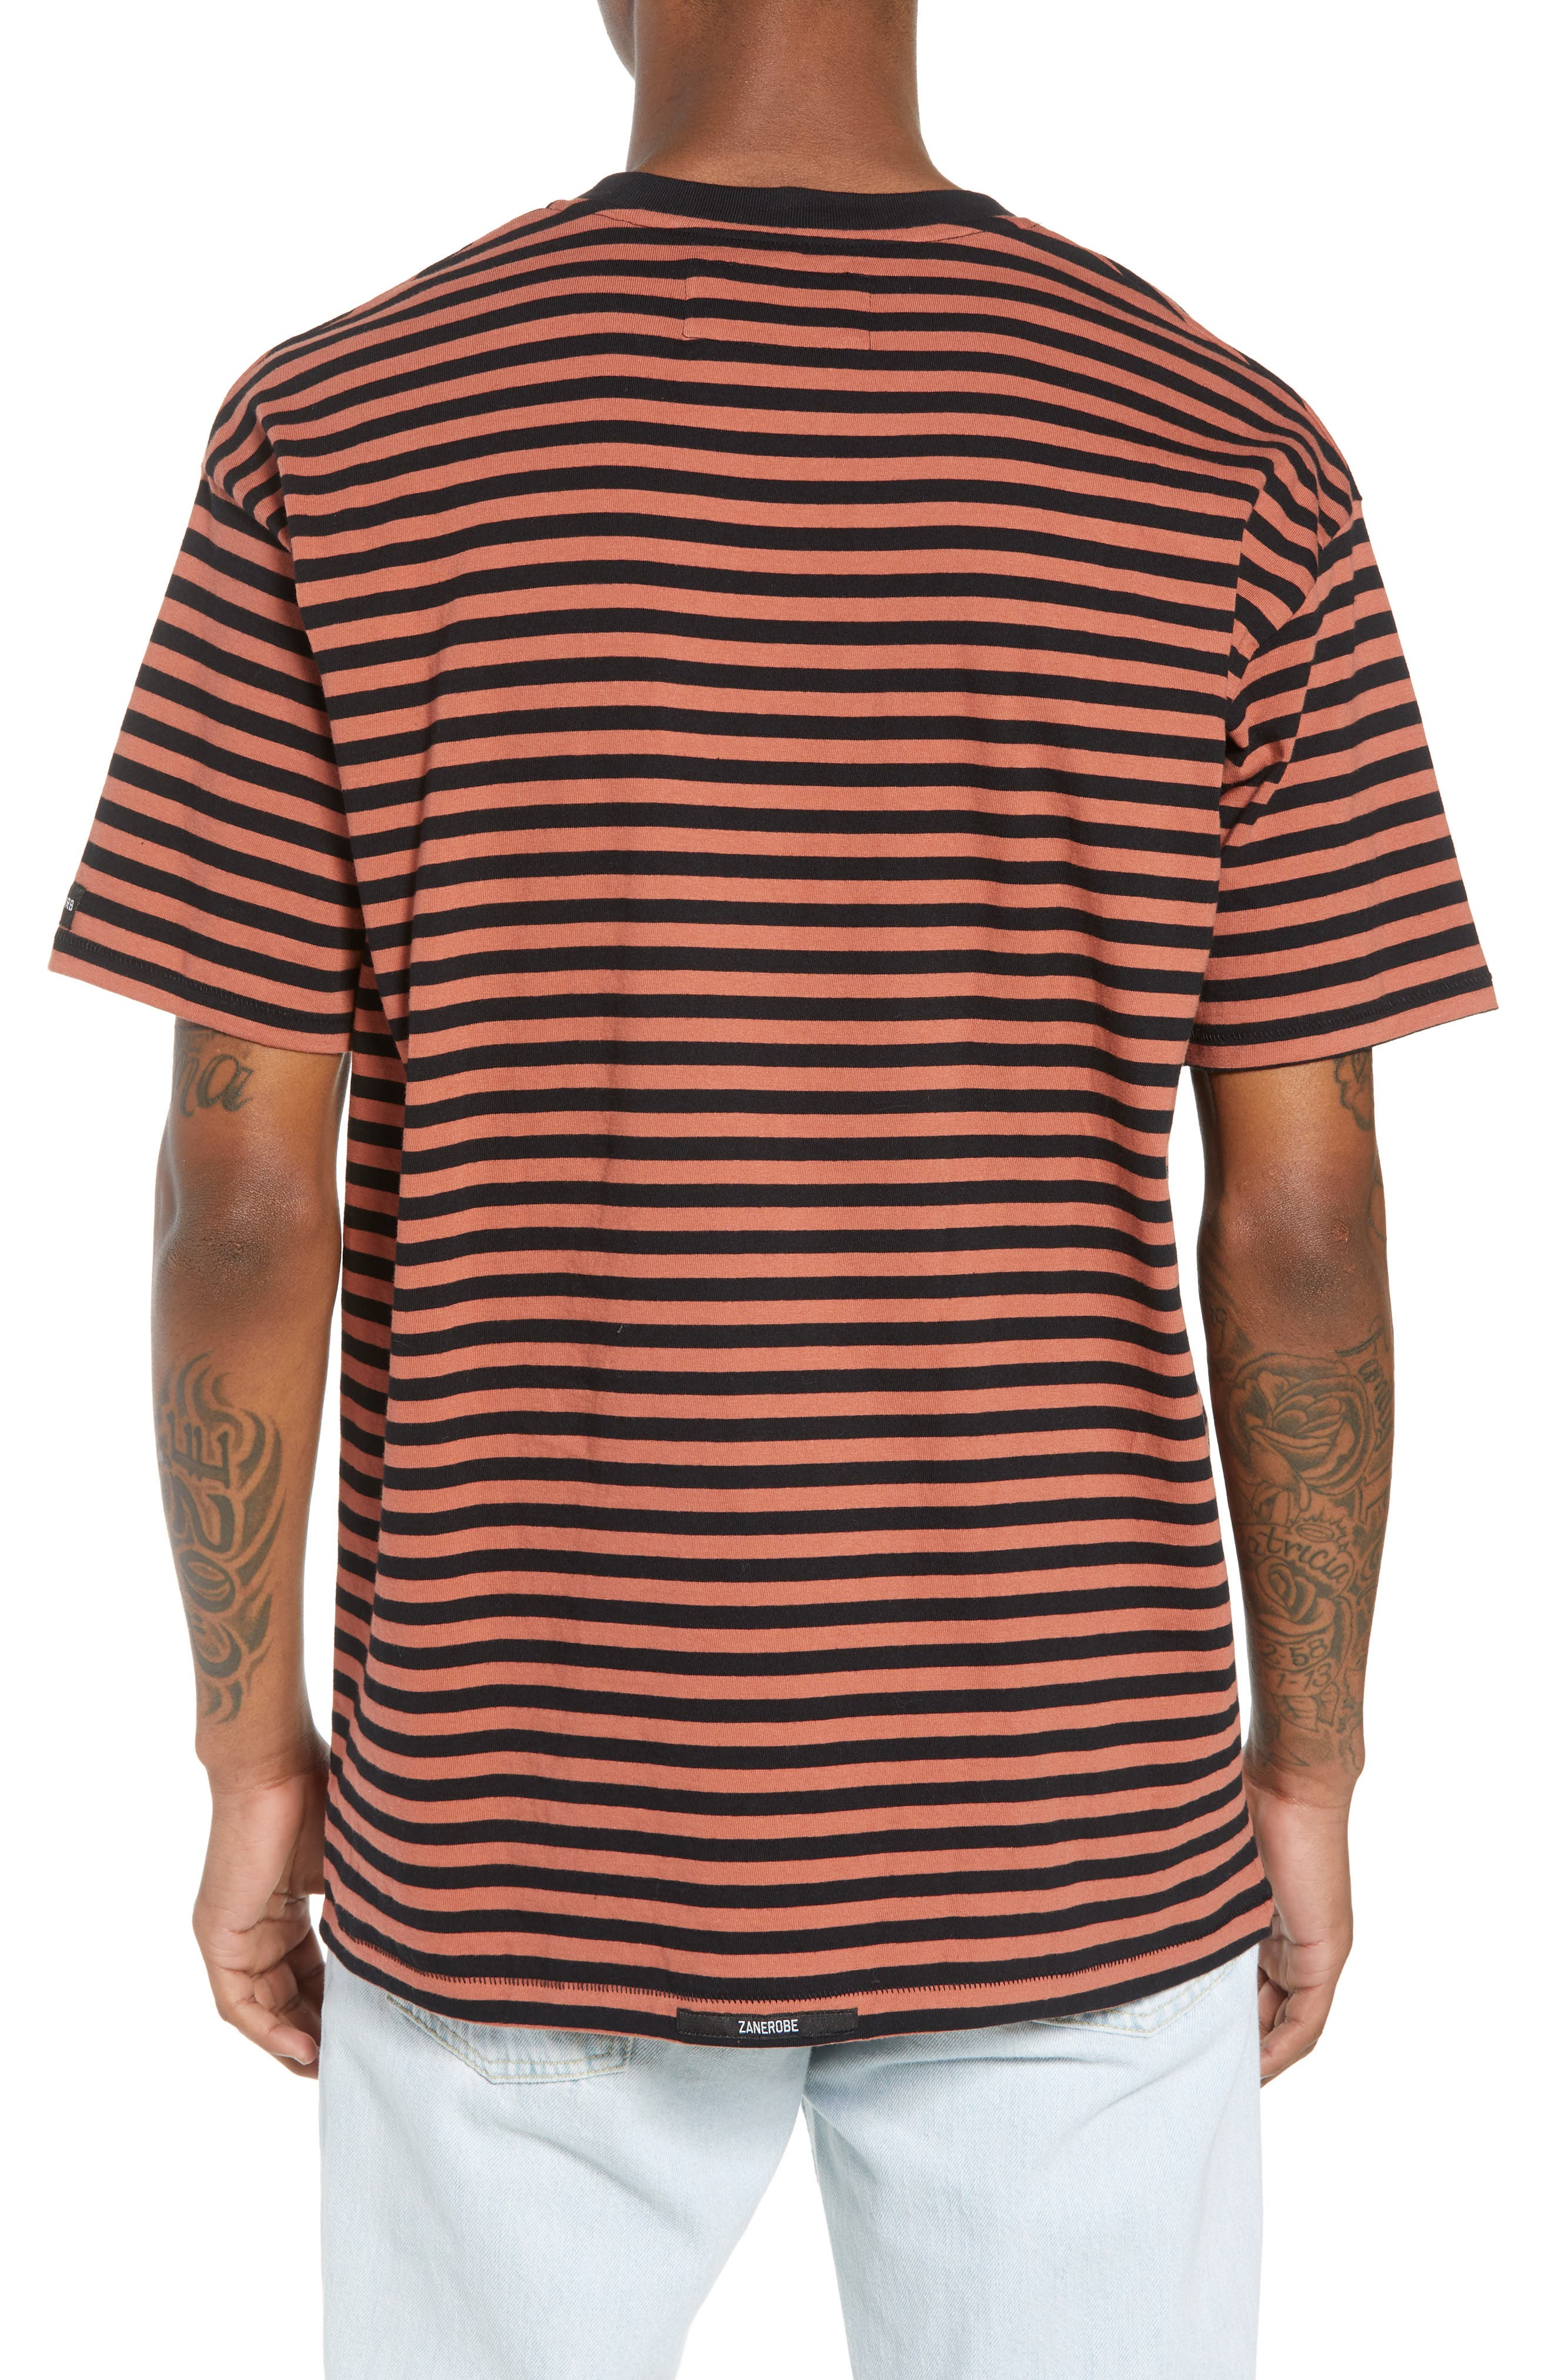 ZABEROBE Stripe Box T-Shirt,                             Alternate thumbnail 2, color,                             Bronze/ Black